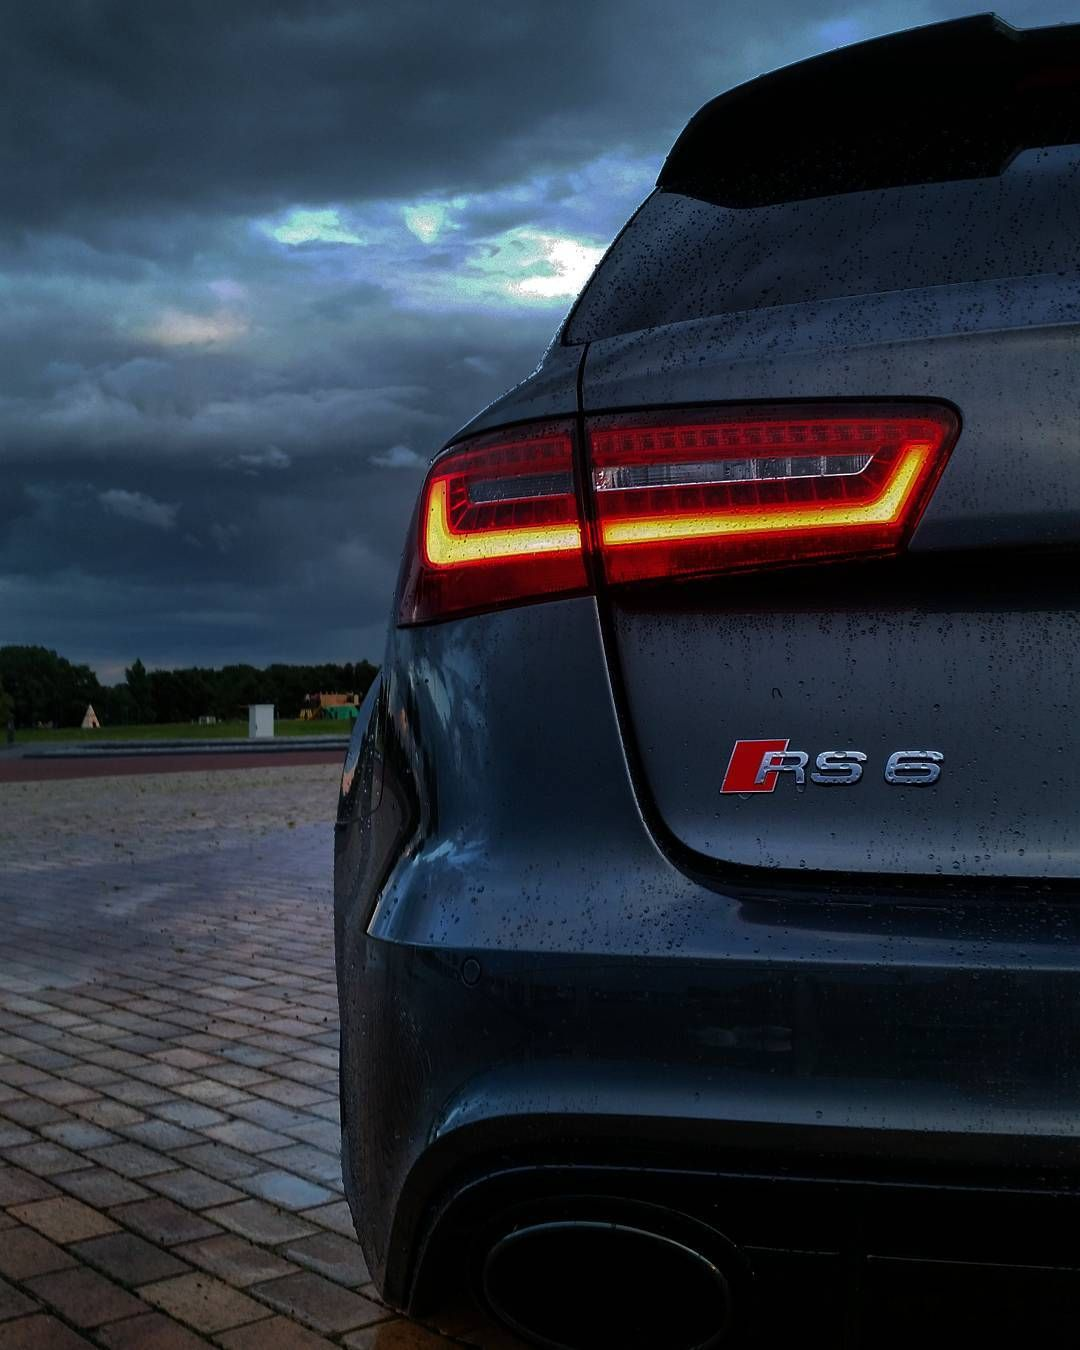 RS6 iPhone Background Спортивные автомобили, Фольксваген